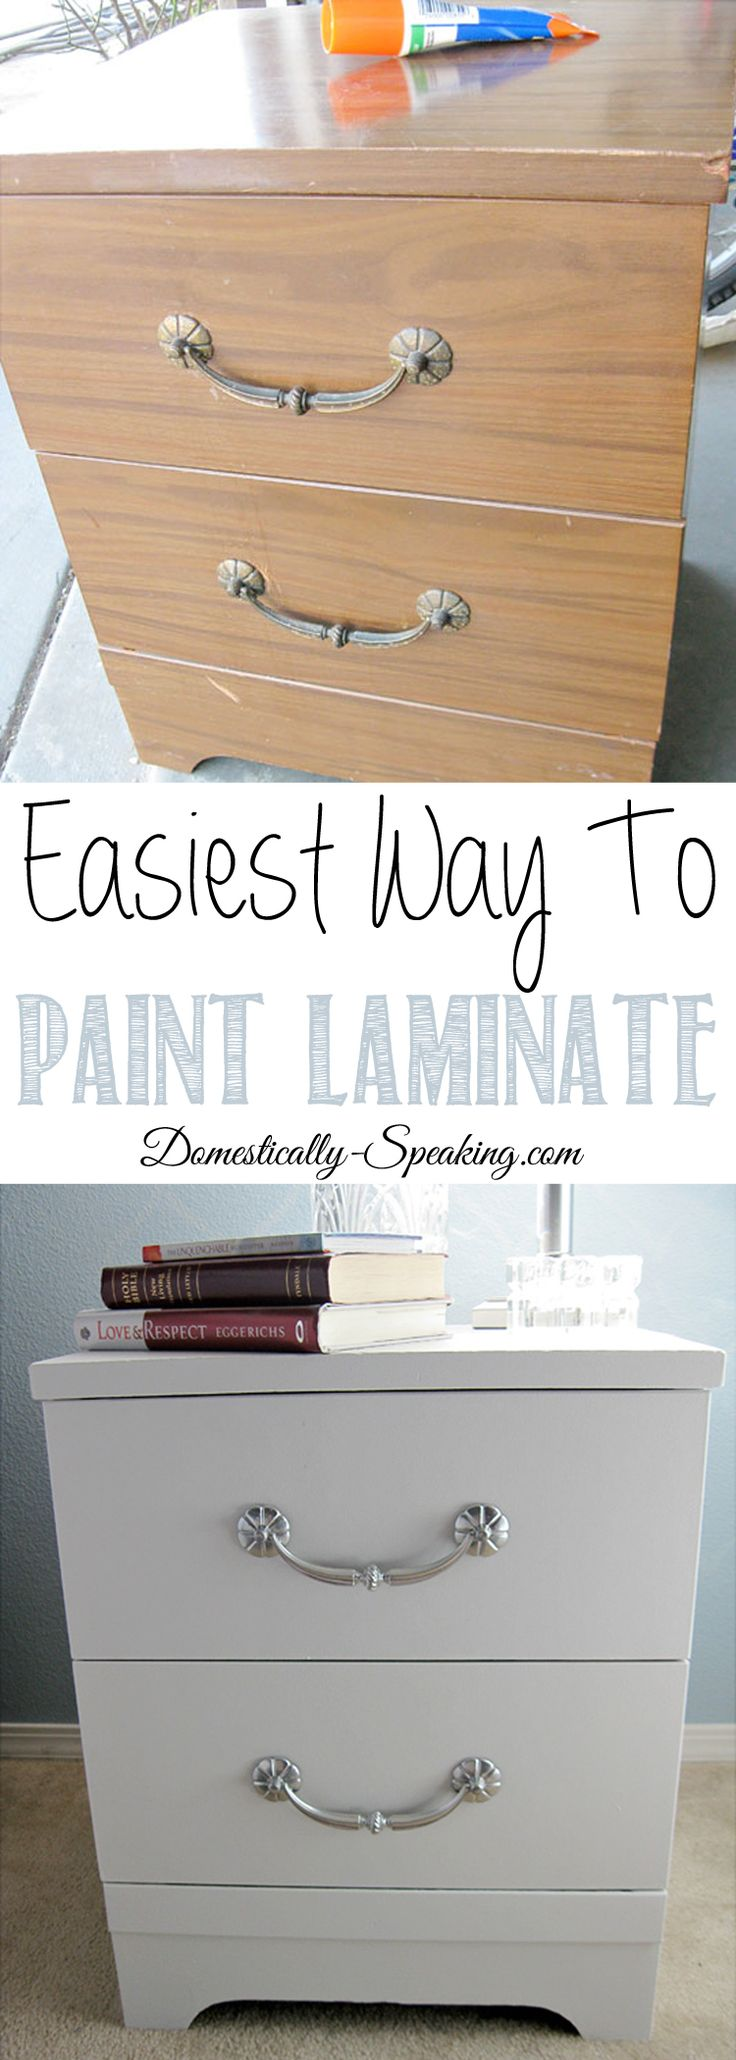 Best 25 How to paint laminate ideas on Pinterest